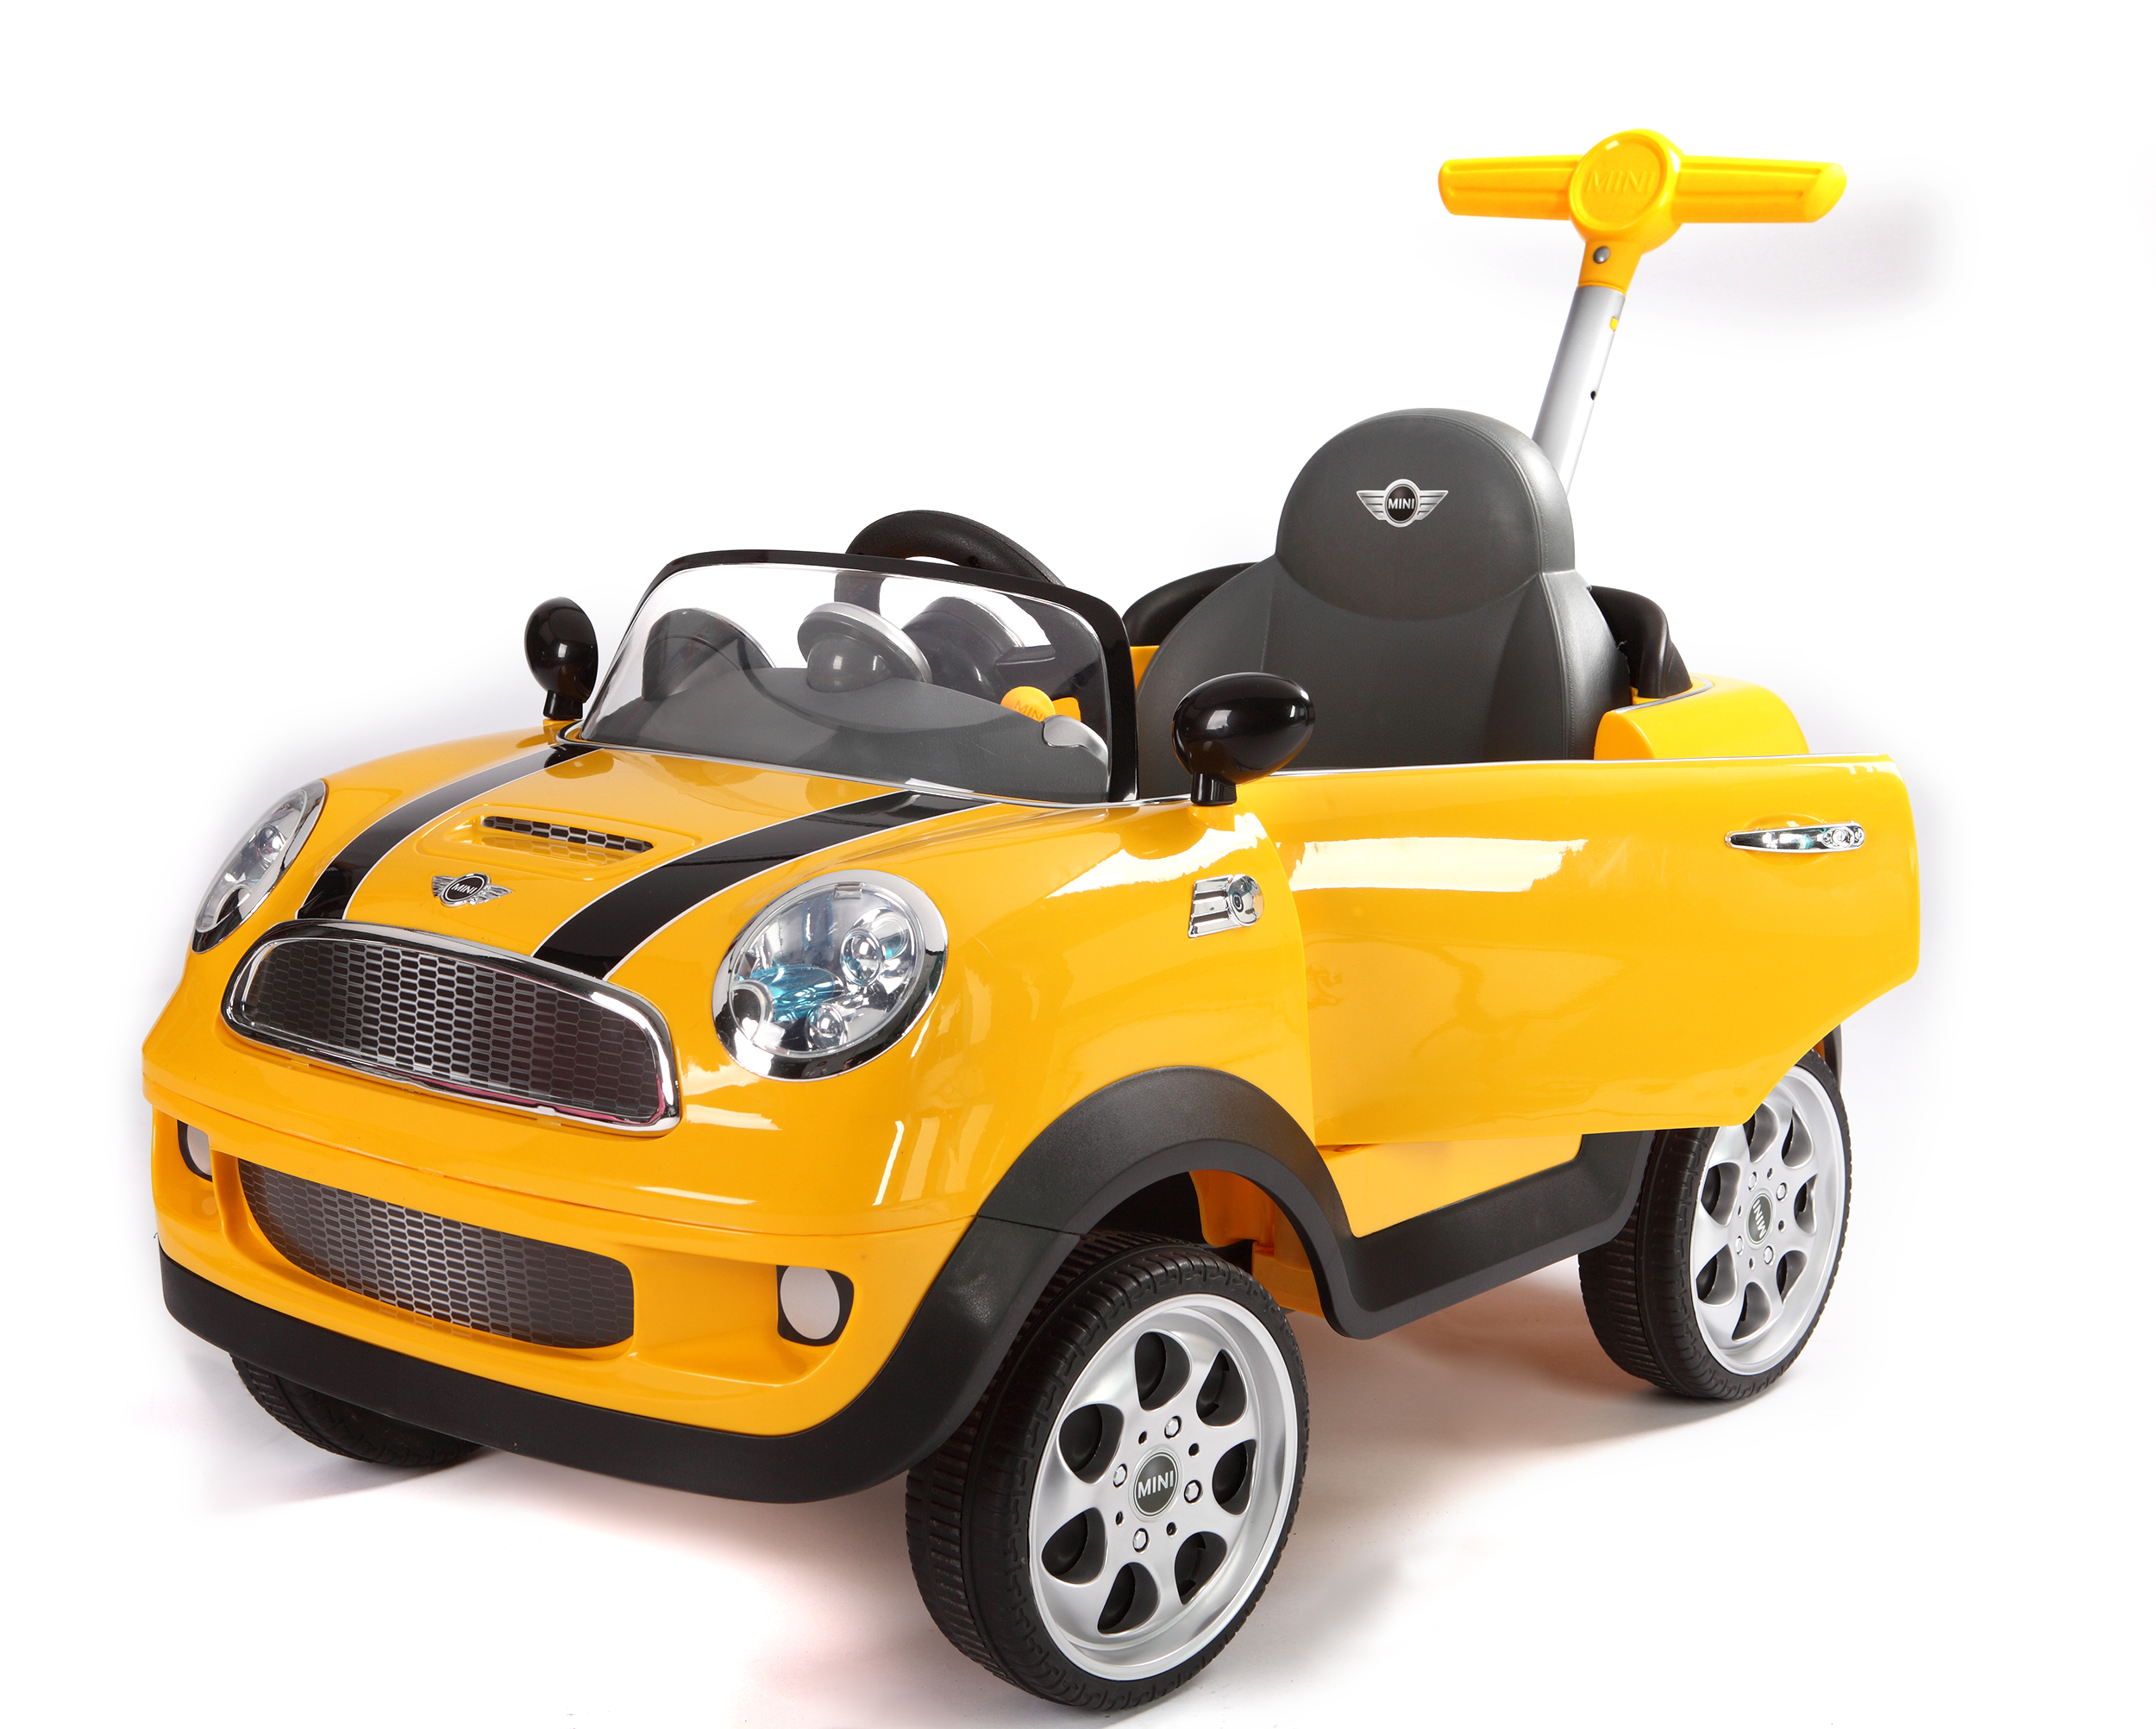 yellow mini cooper s push-car ride-on with handle opening door